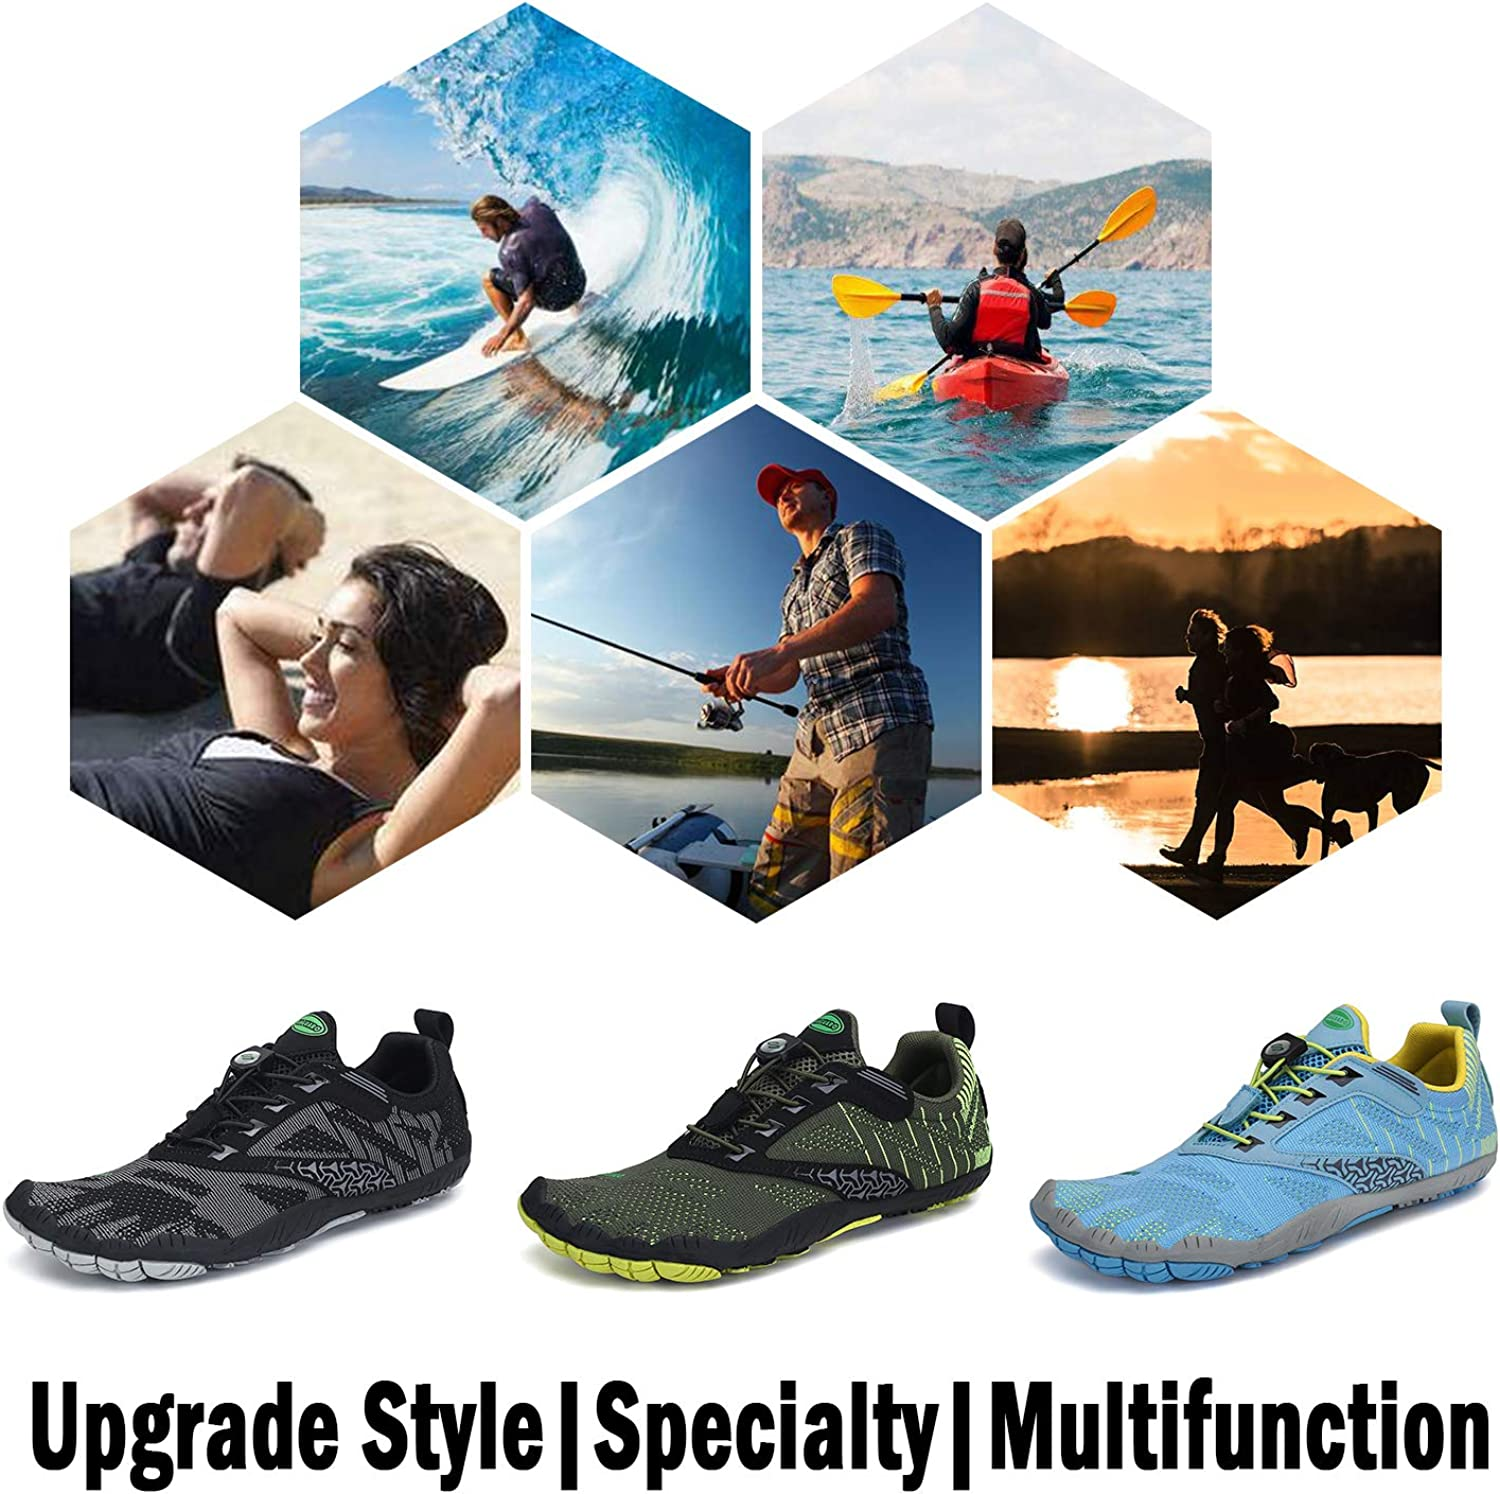 Outdoor Cross Trainer Zero Drop Sole Saguaro Mens Womens Minimalist Trail Running Shoes Barefoot Walking Wide Toe Box Trail Running Sports Outdoors